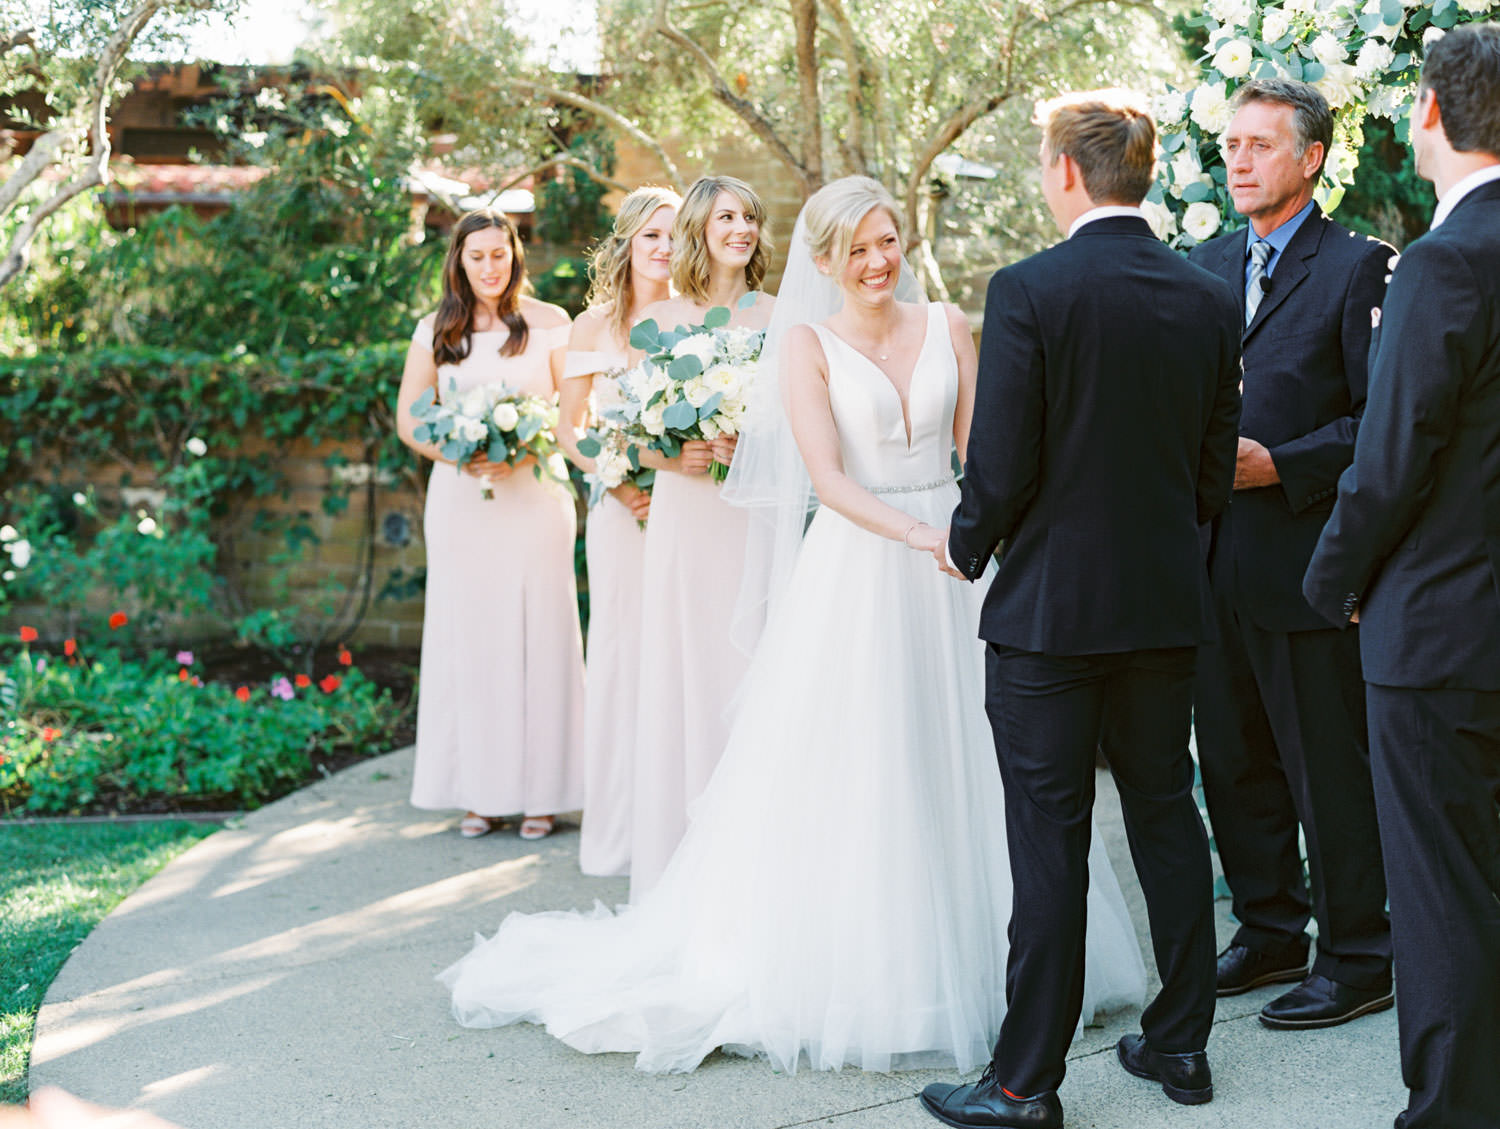 Bride smiling during ceremony. Circular ceremony arch with silver dollar eucalyptus, white dahlias and roses. Estancia La Jolla wedding shot on film by Cavin Elizabeth Photography